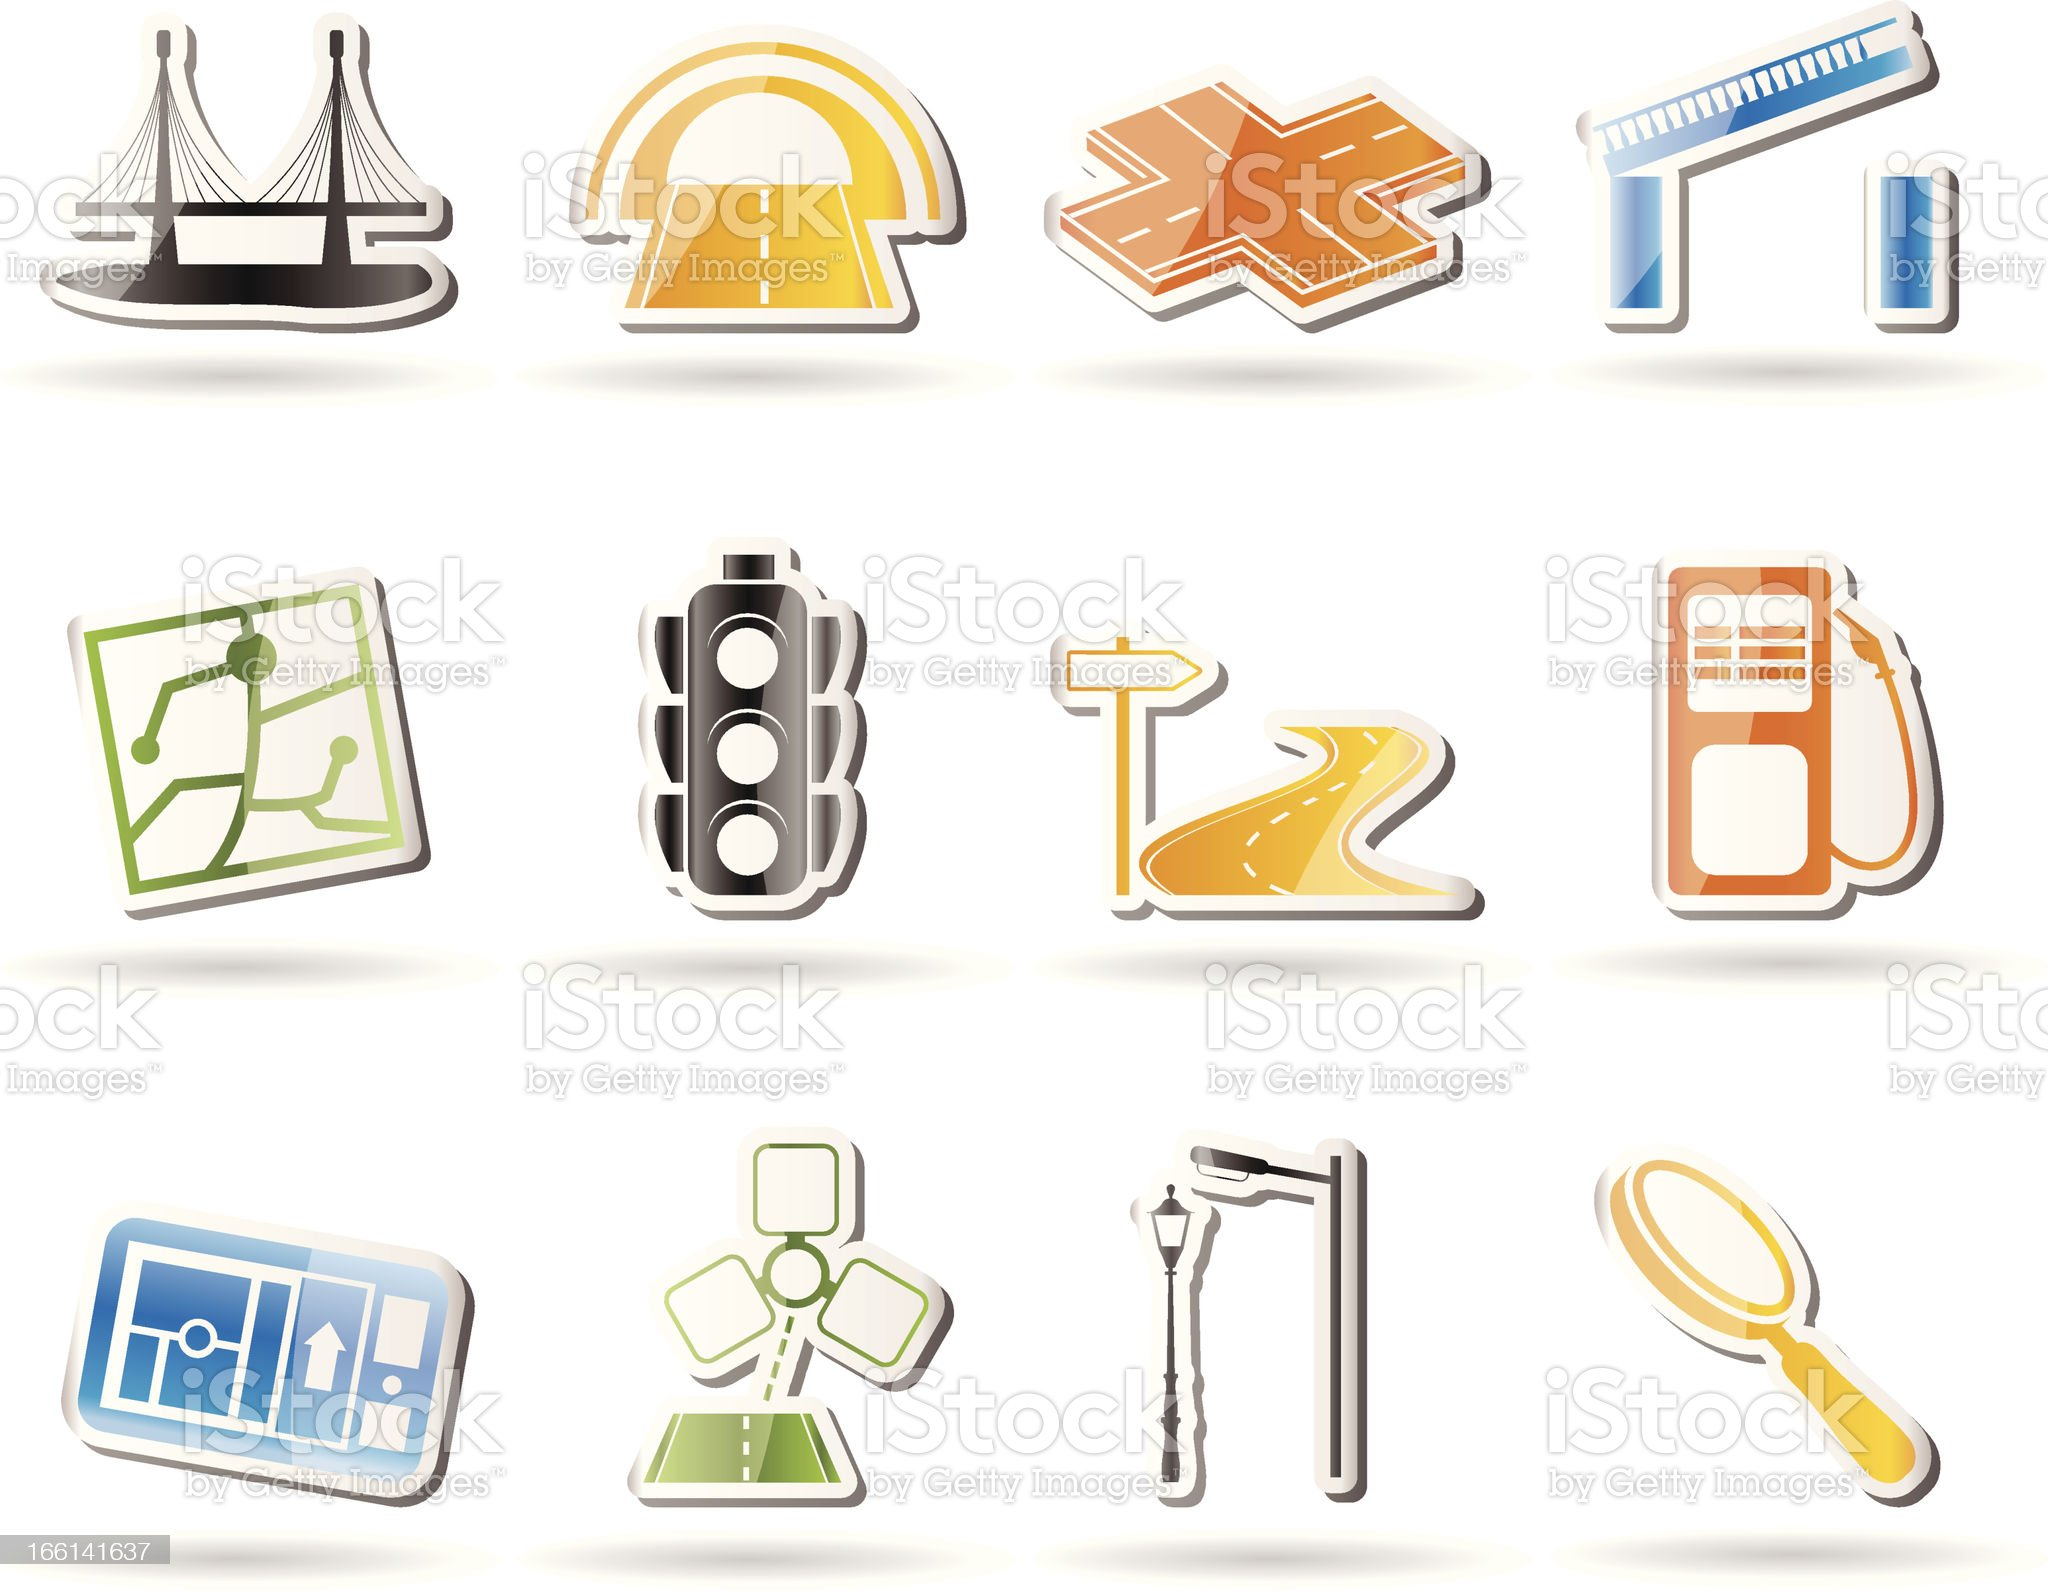 Road, navigation and travel icons royalty-free stock vector art